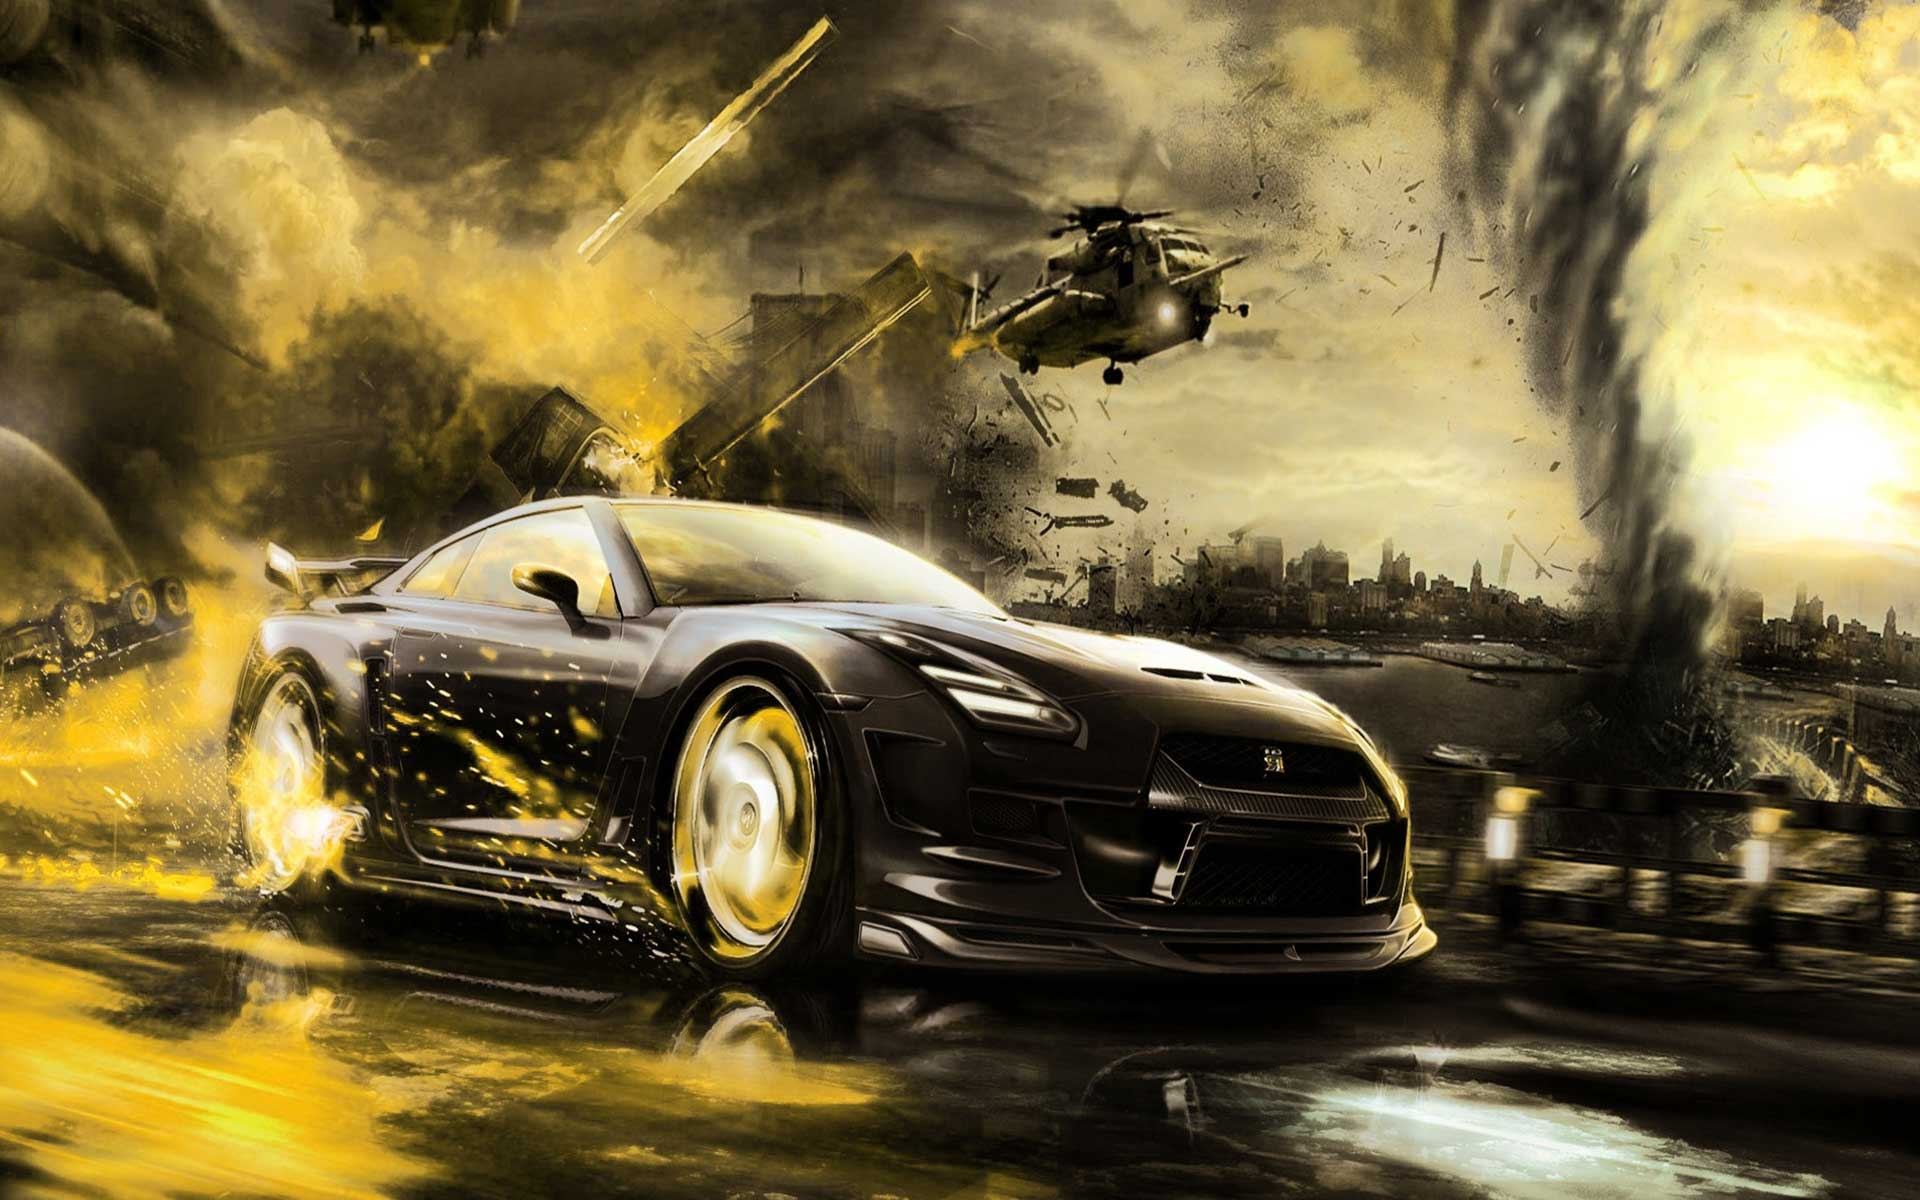 Best 3d Wallpapers Hd Cars Best Cars Wallpapers